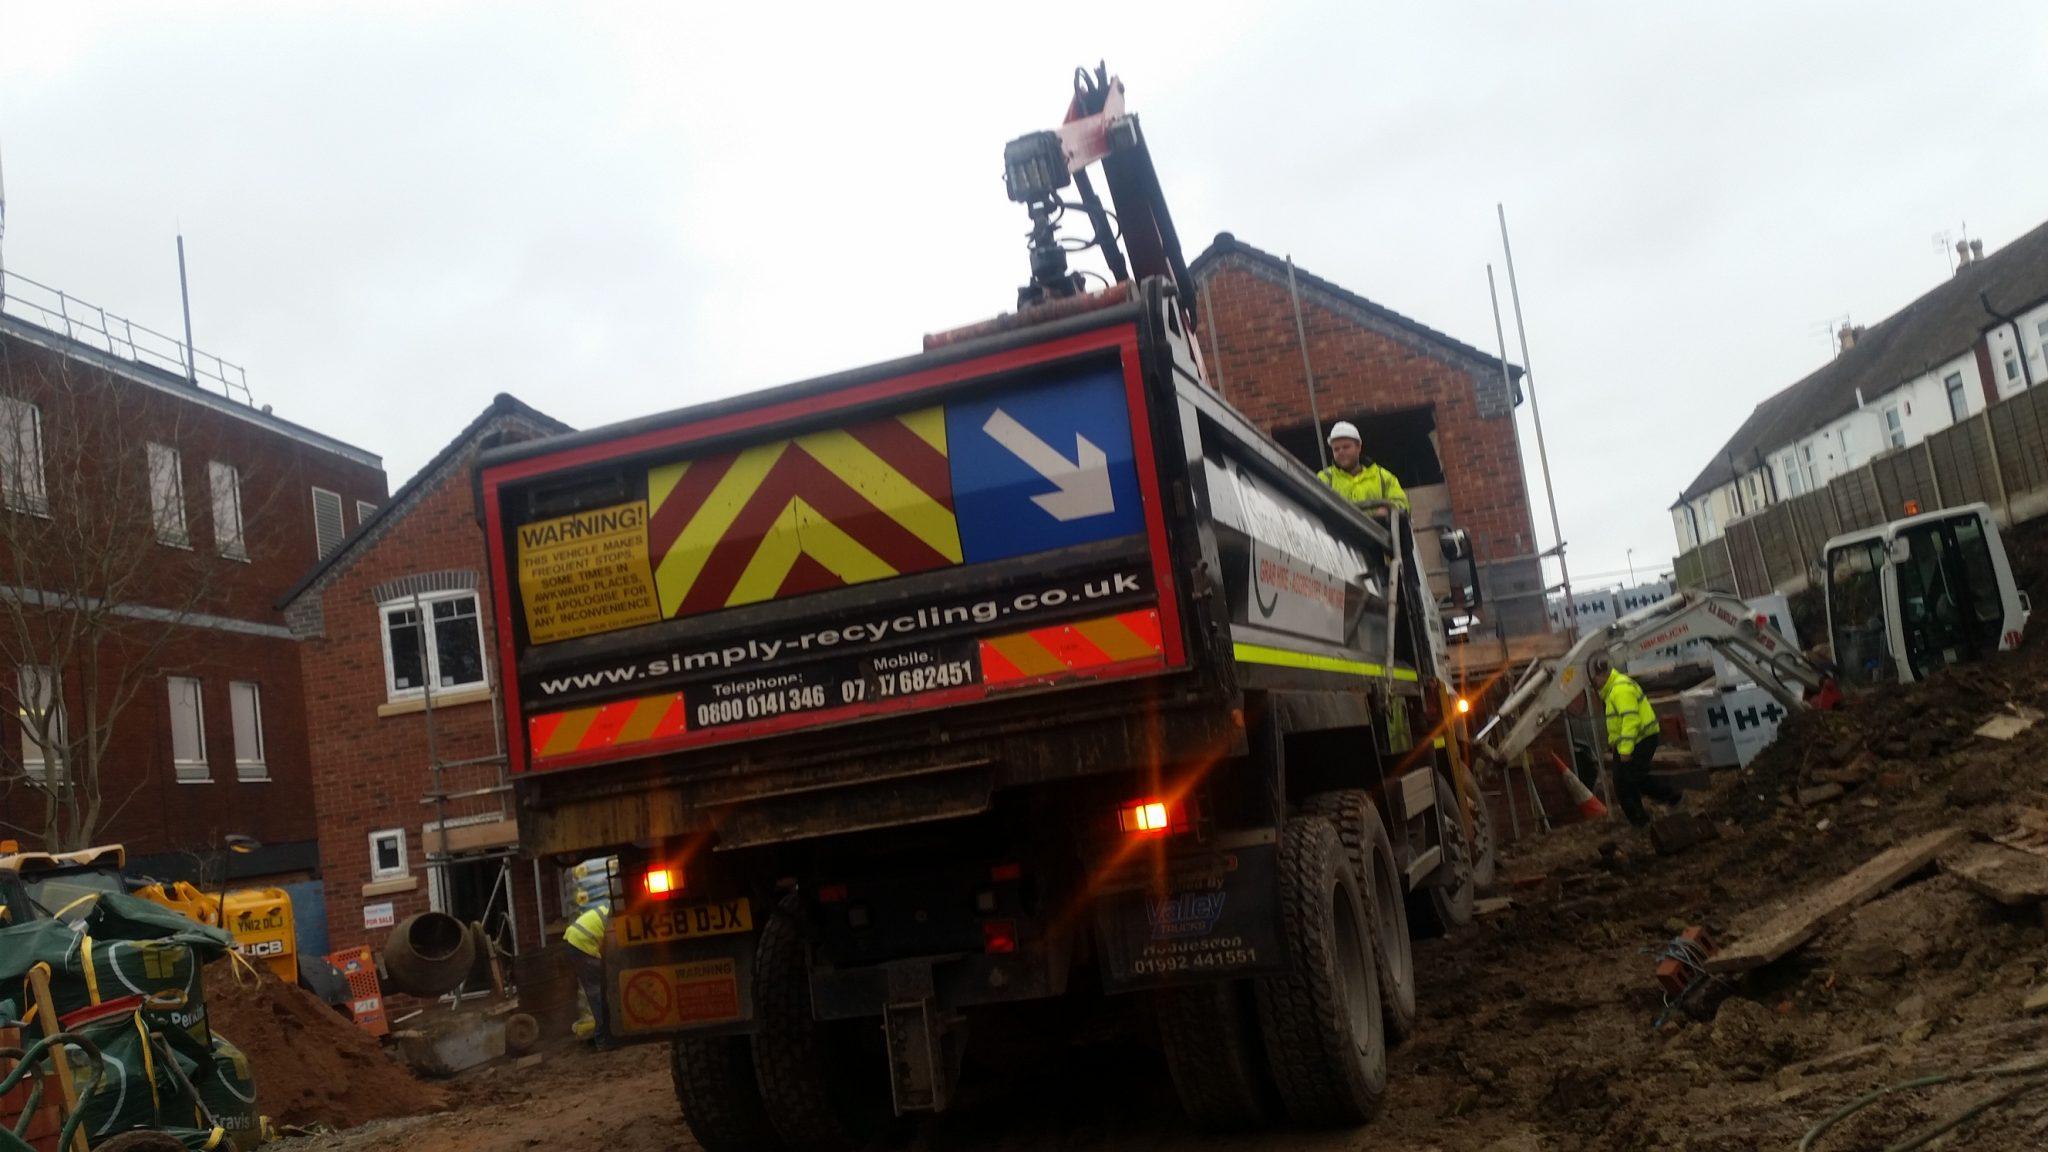 Grab Hire Lorry at a site in Halesowen, Nr. Birminham West Midlands.